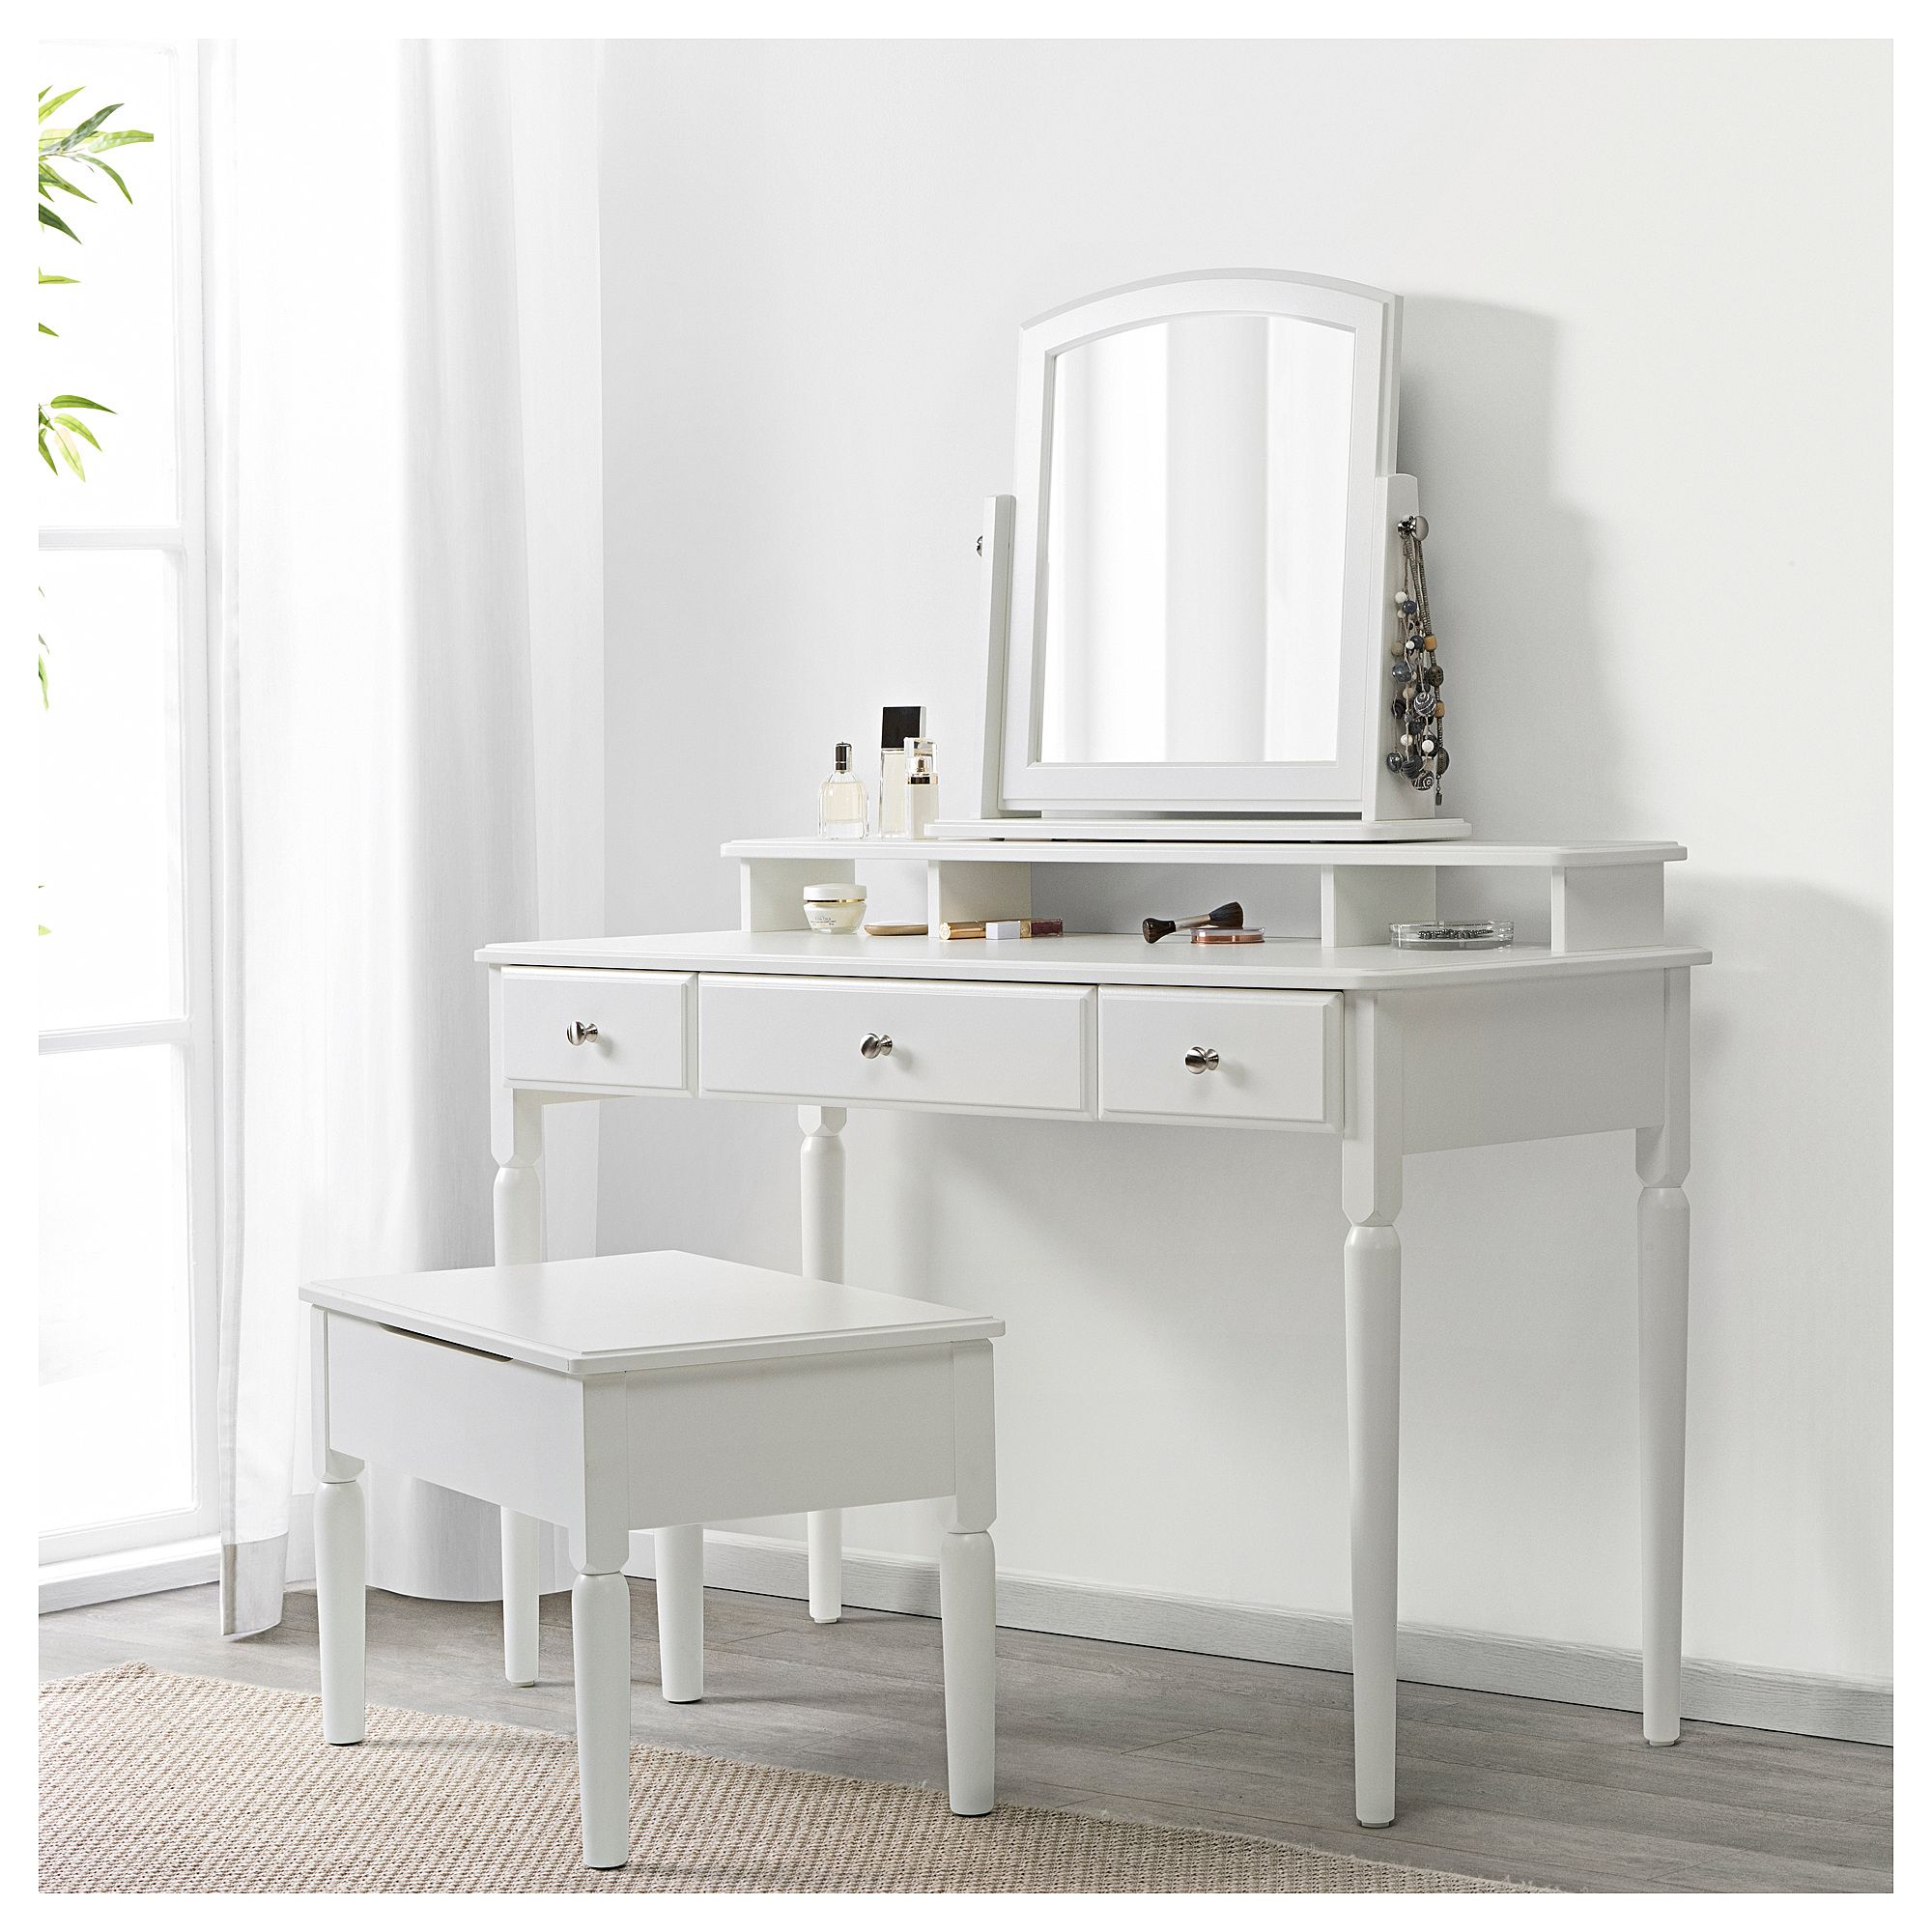 Furniture Home Furnishings Find Your Inspiration Dressing Table Mirror White Dressing Tables Ikea Tyssedal